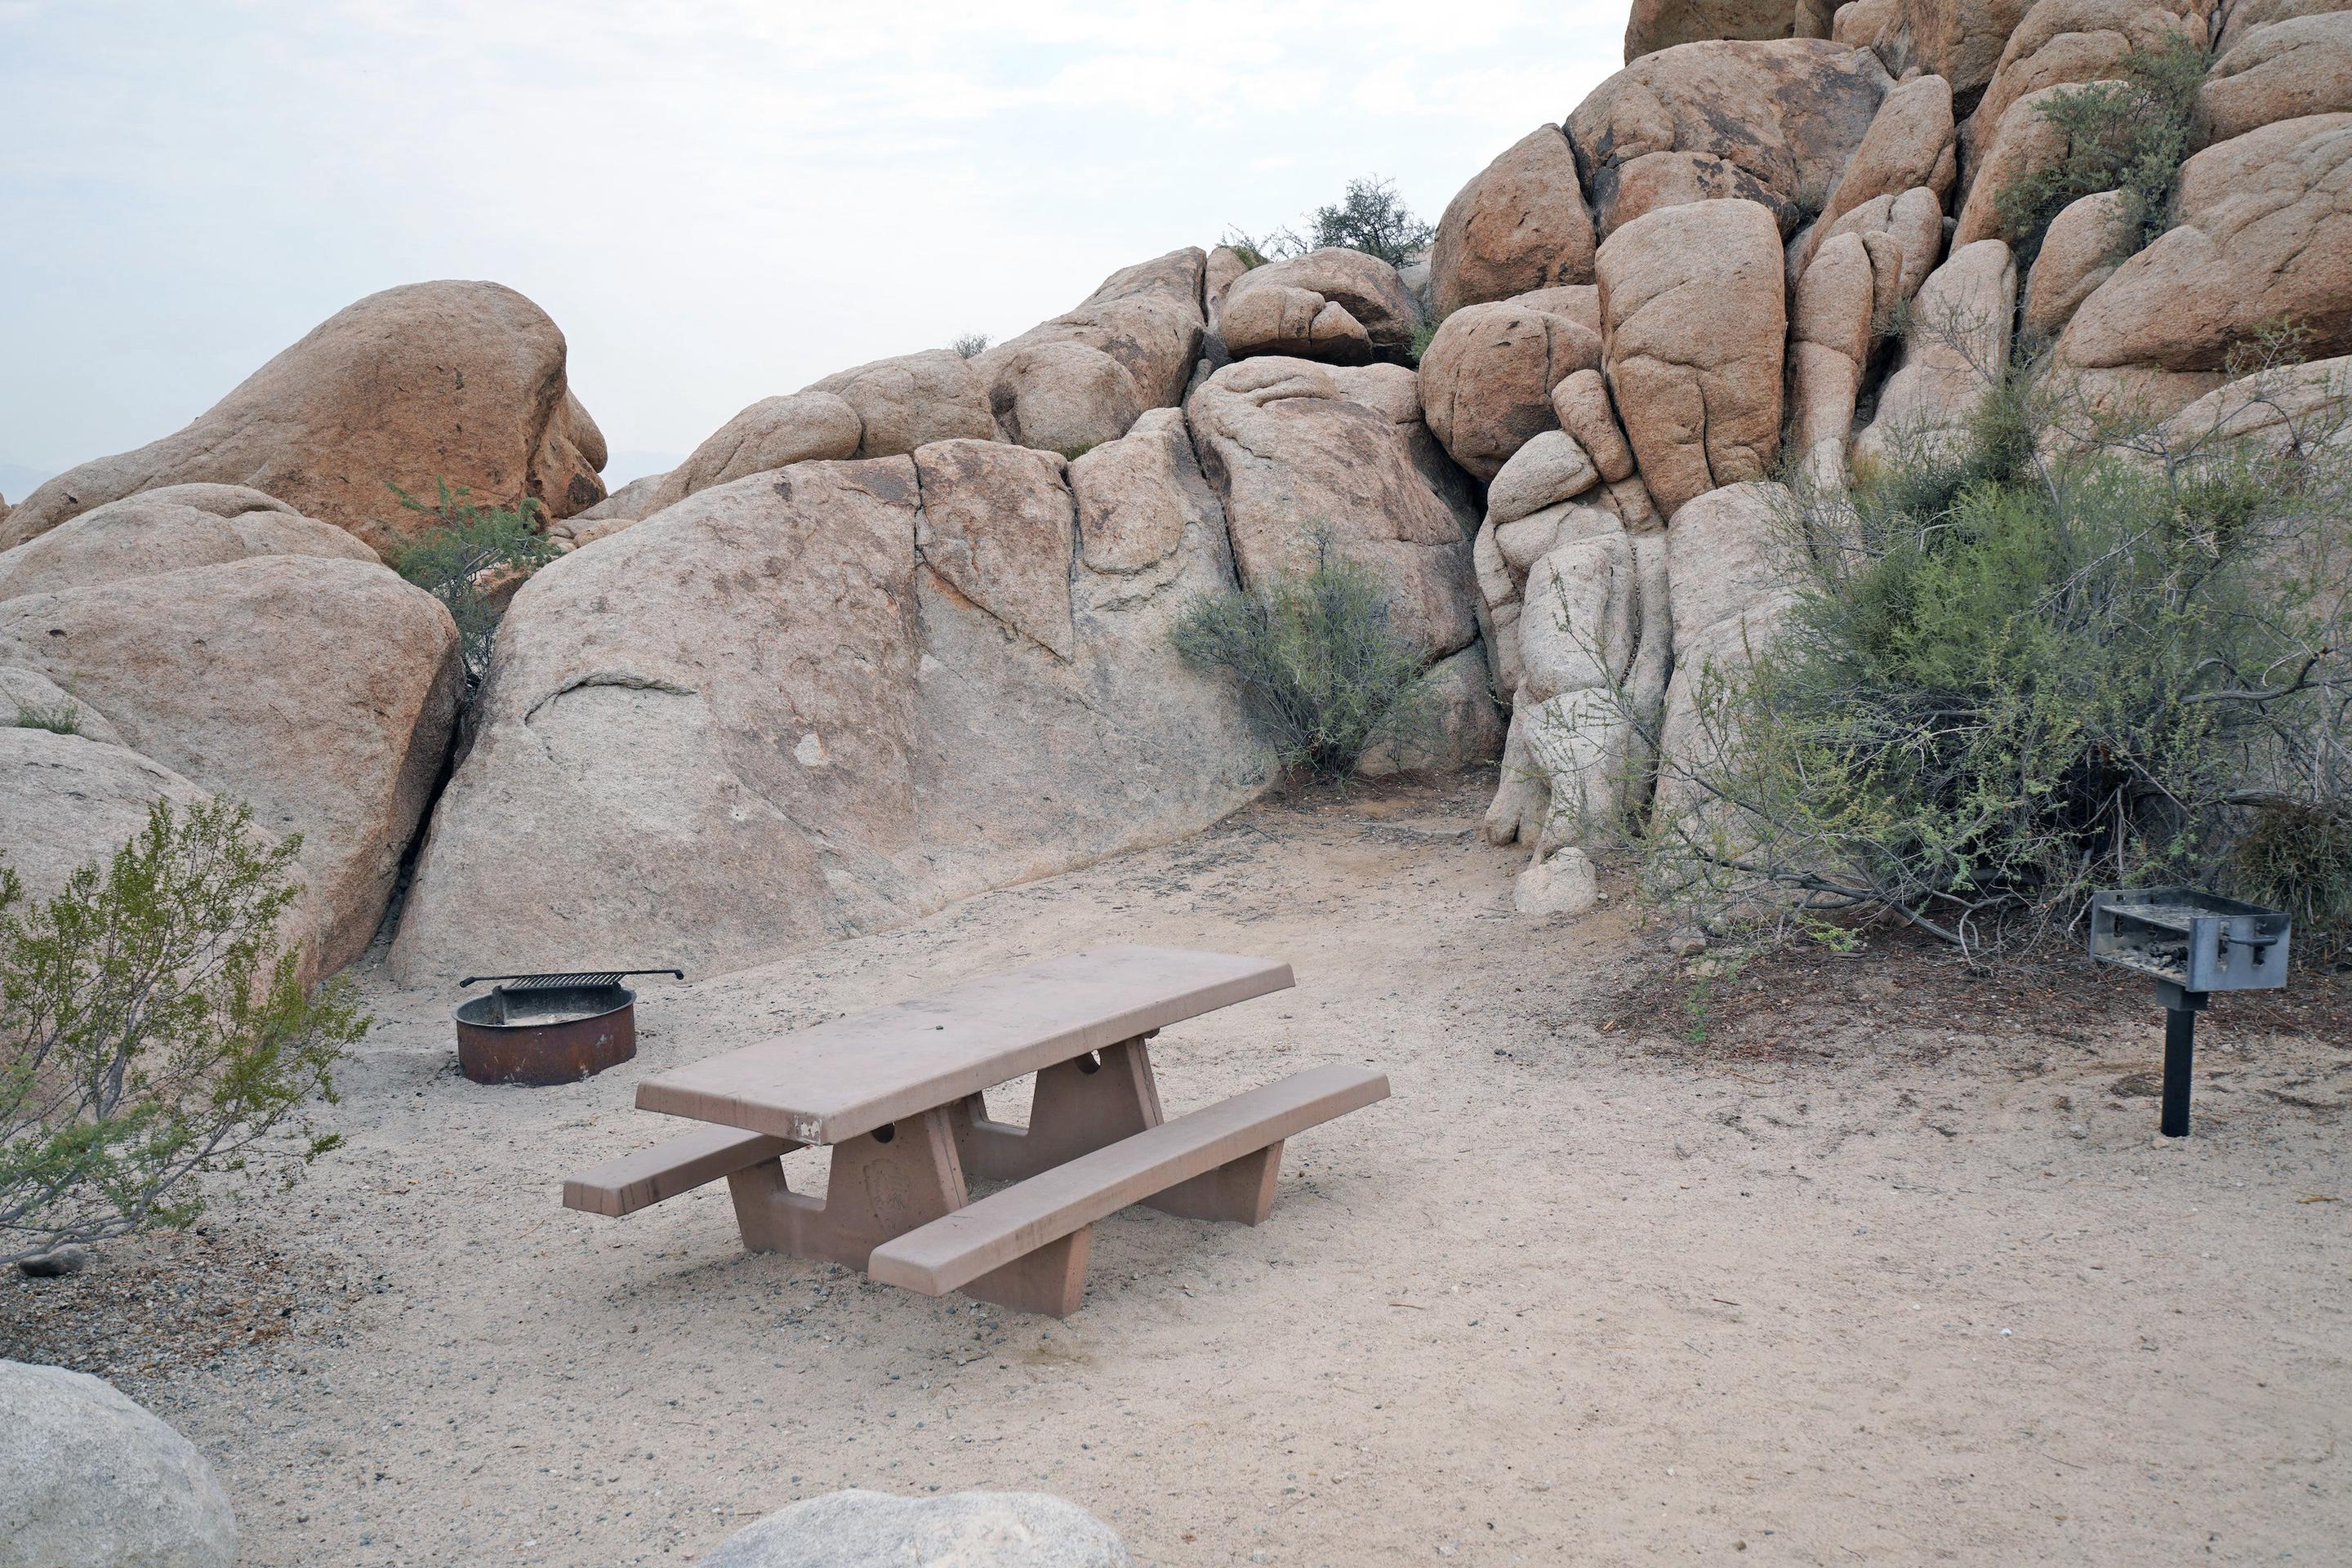 Campsite  with picnic table surrounded by boulders.Campsite.